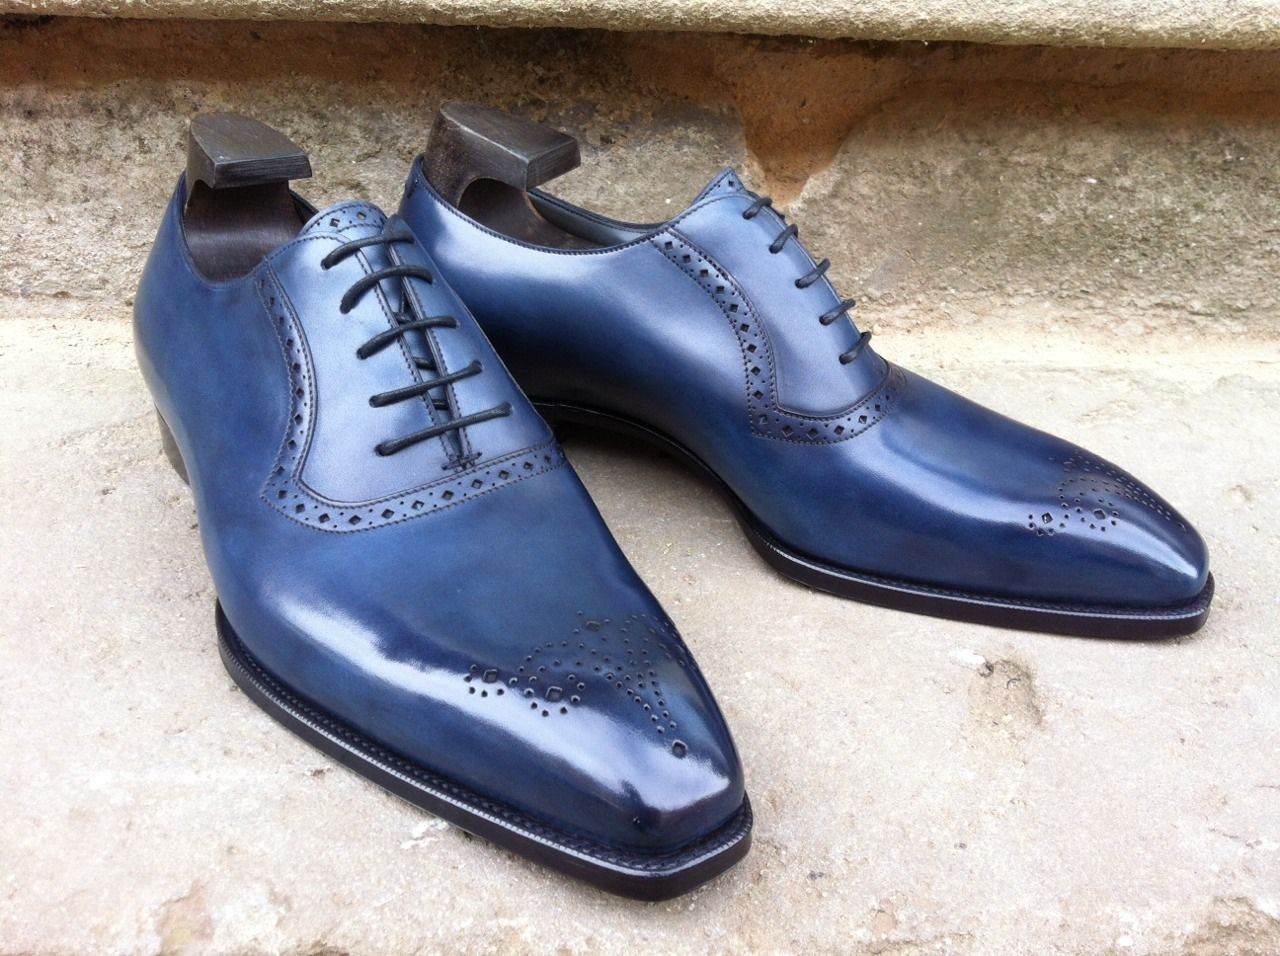 Bespoke-England — Hayes in Midnight Blue Calf on the Deco Last